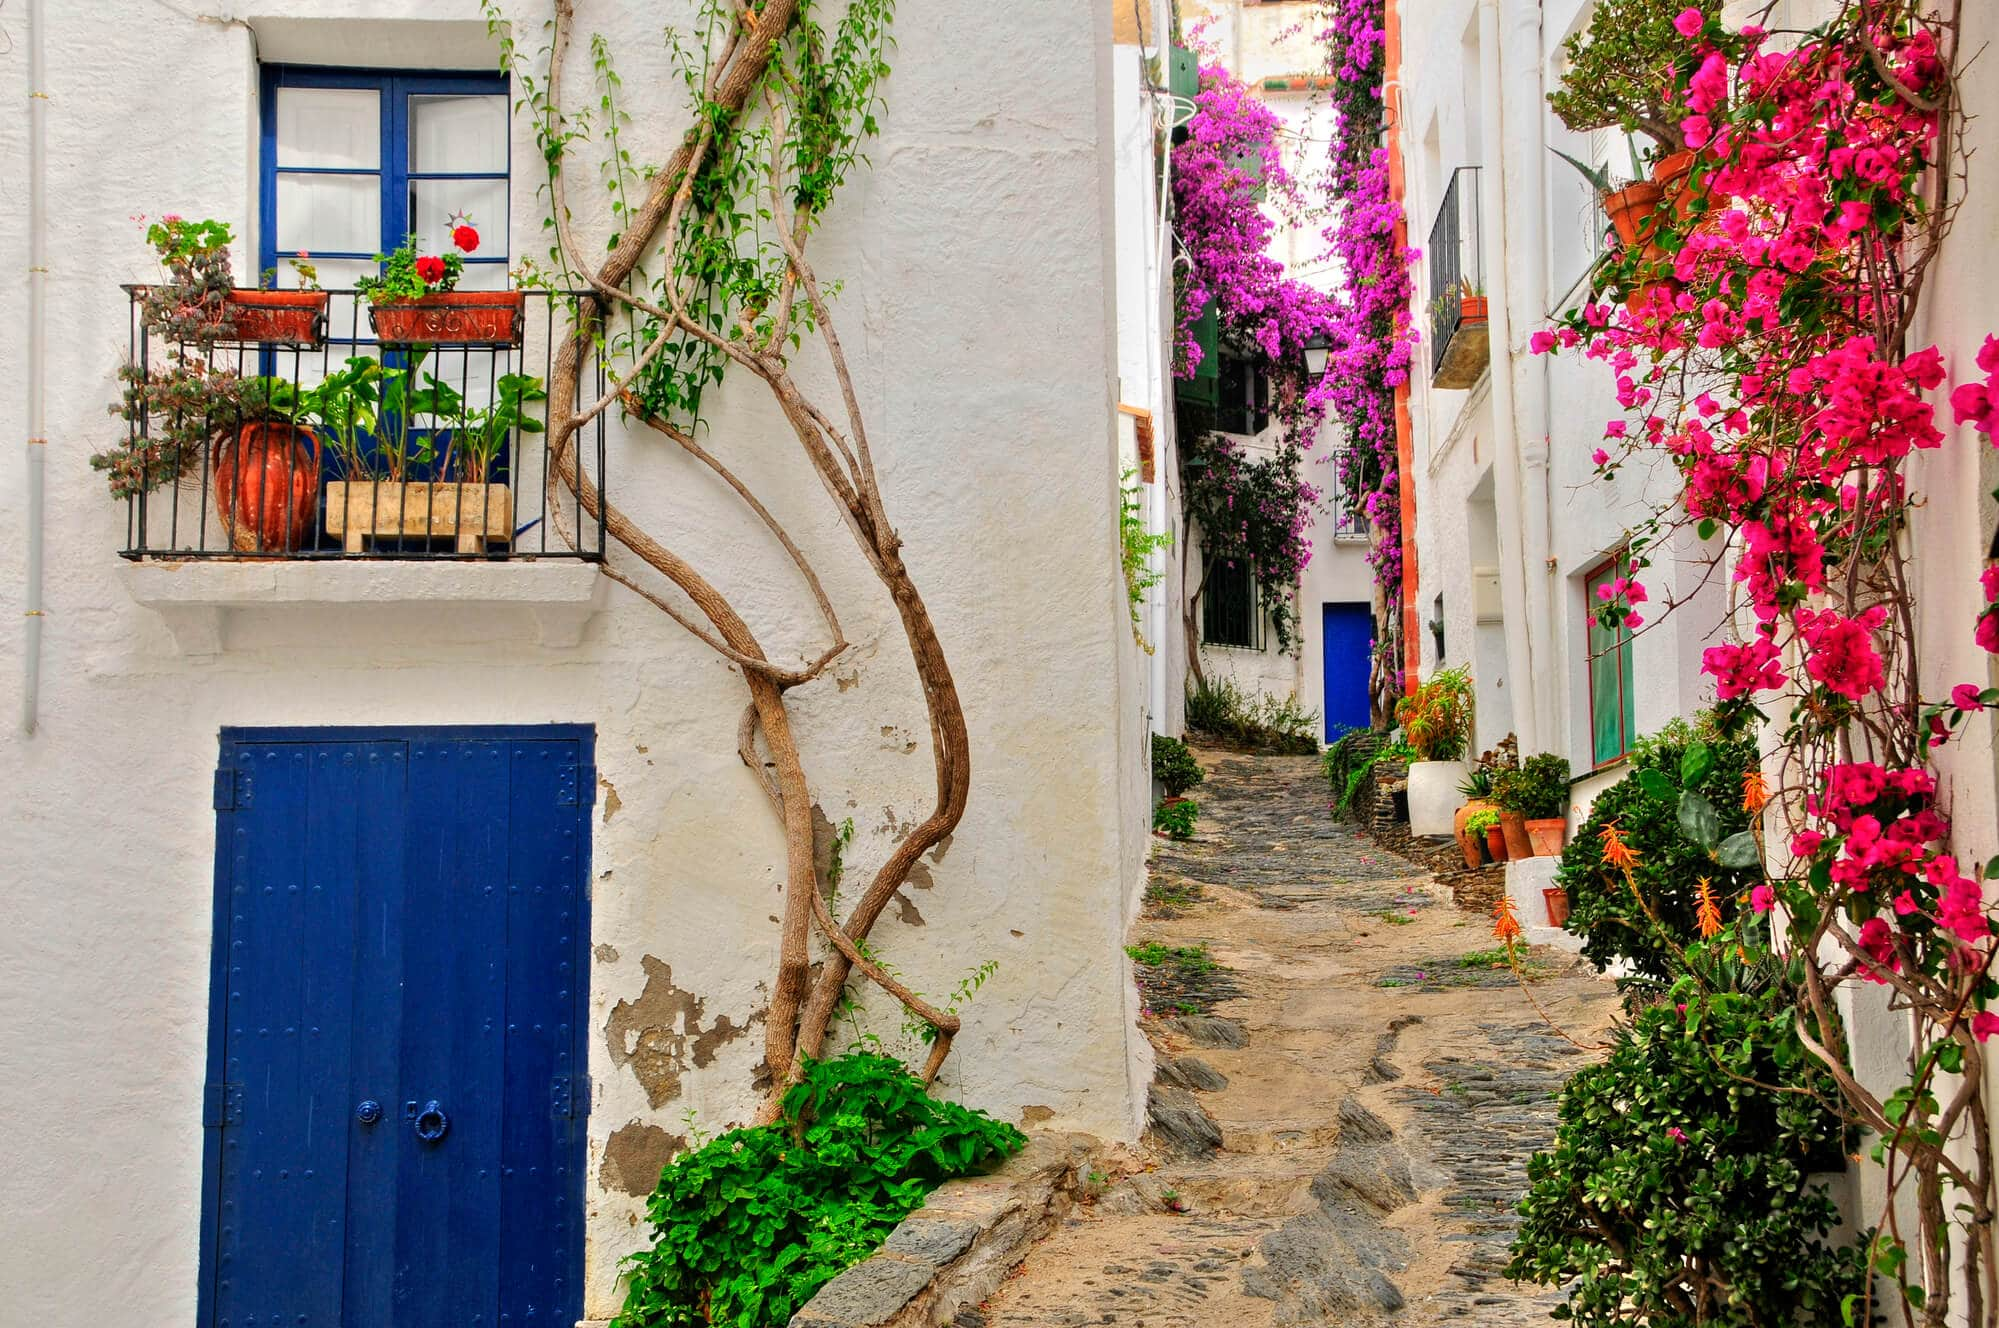 A narrow cobbled street between white houses with blue doors, covered in pink and purple flowers in Cadaqués - The Ultimate Spain Bucket List